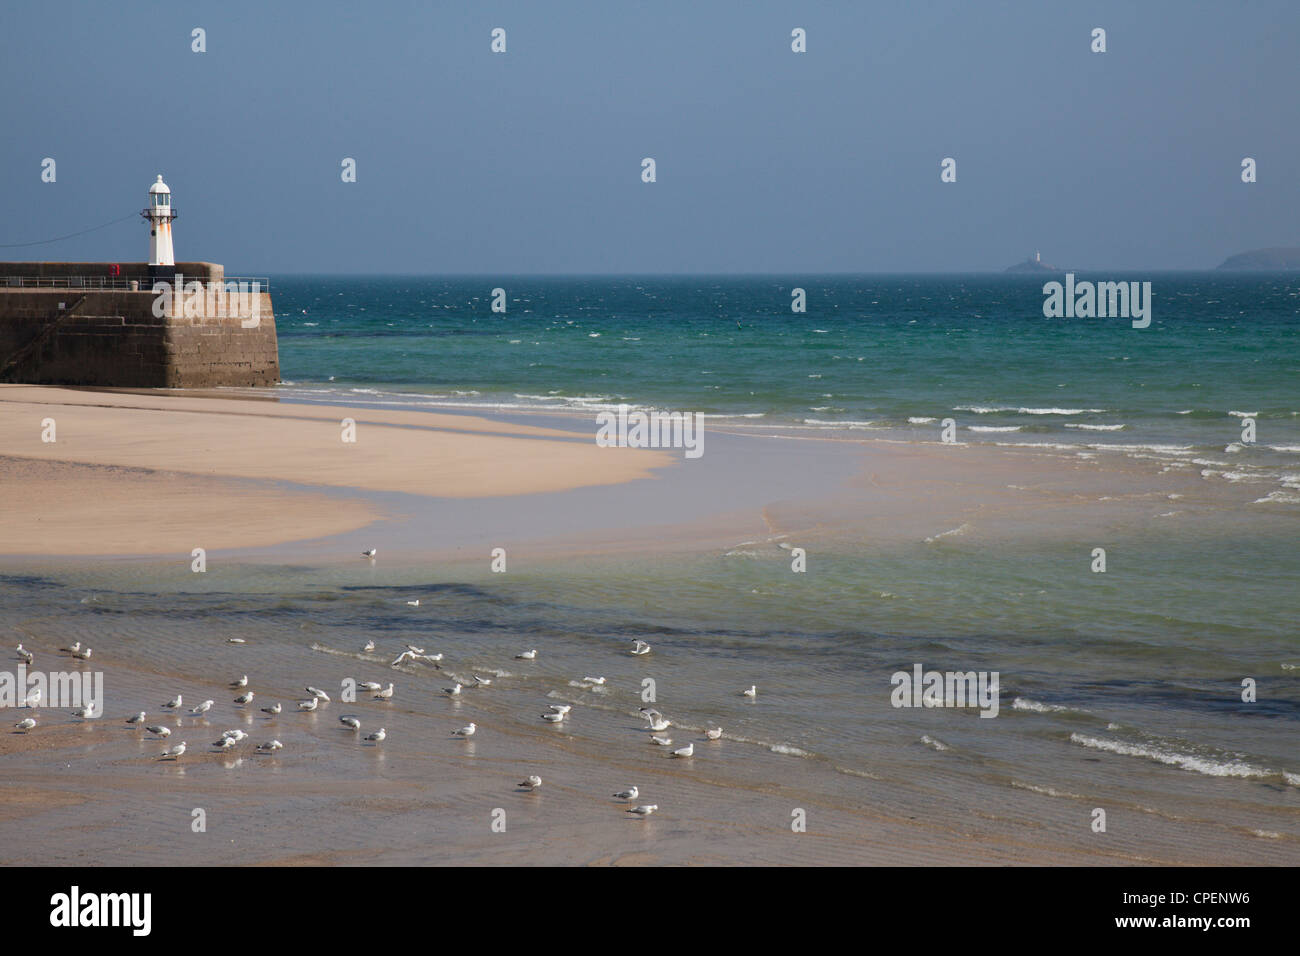 View out to sea from the harbour, St Ives, Cornwall, England, UK. Seagulls on the beach. Stock Photo